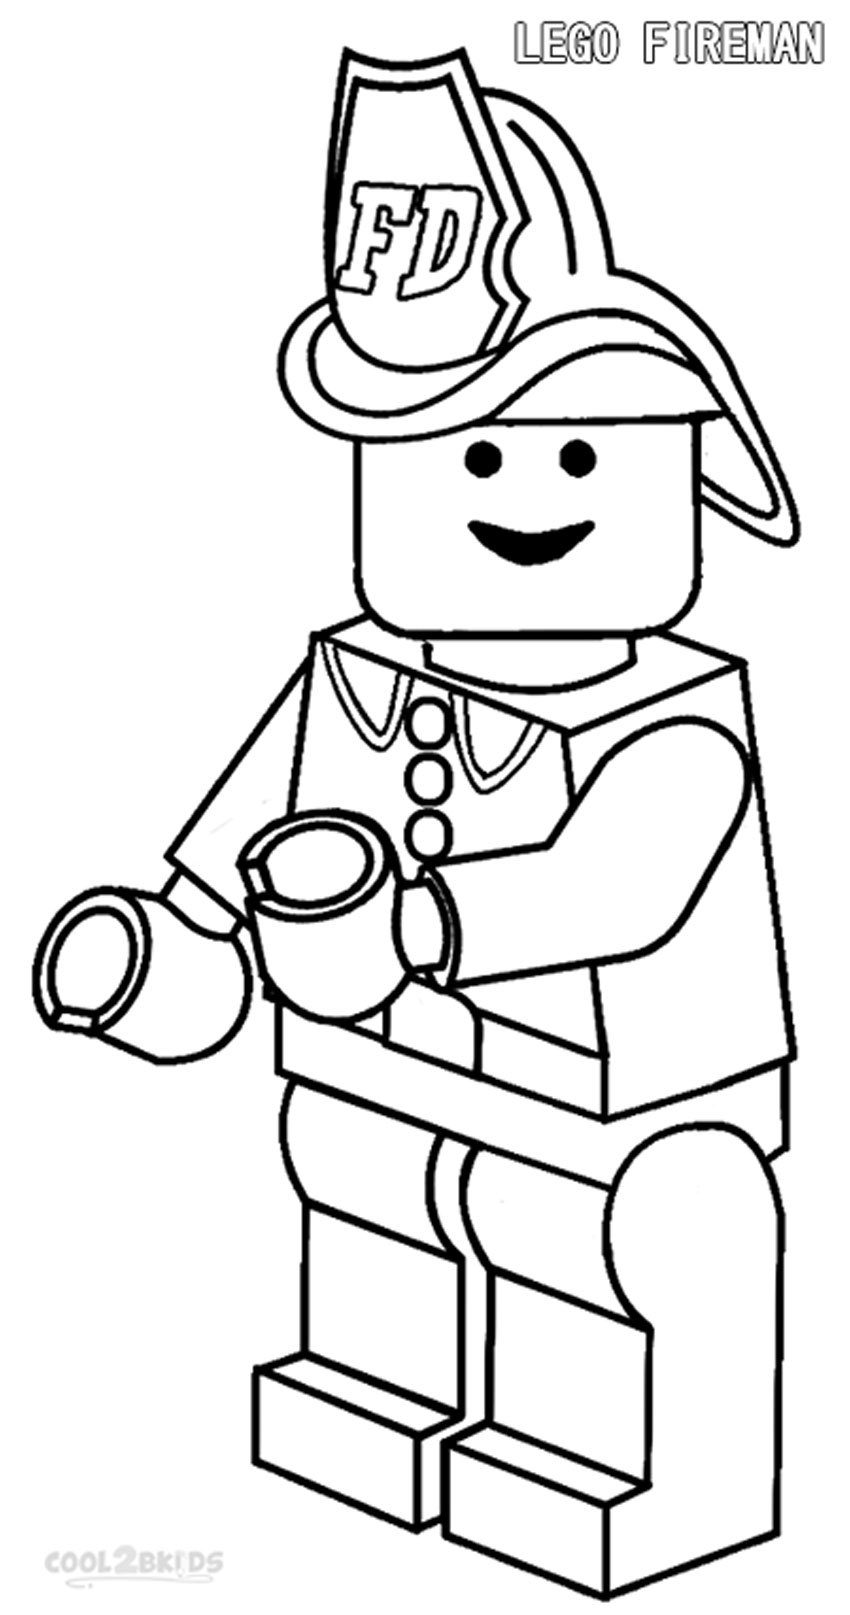 Free Coloring Pages Of Lego Fire Lego Free Coloring Pages